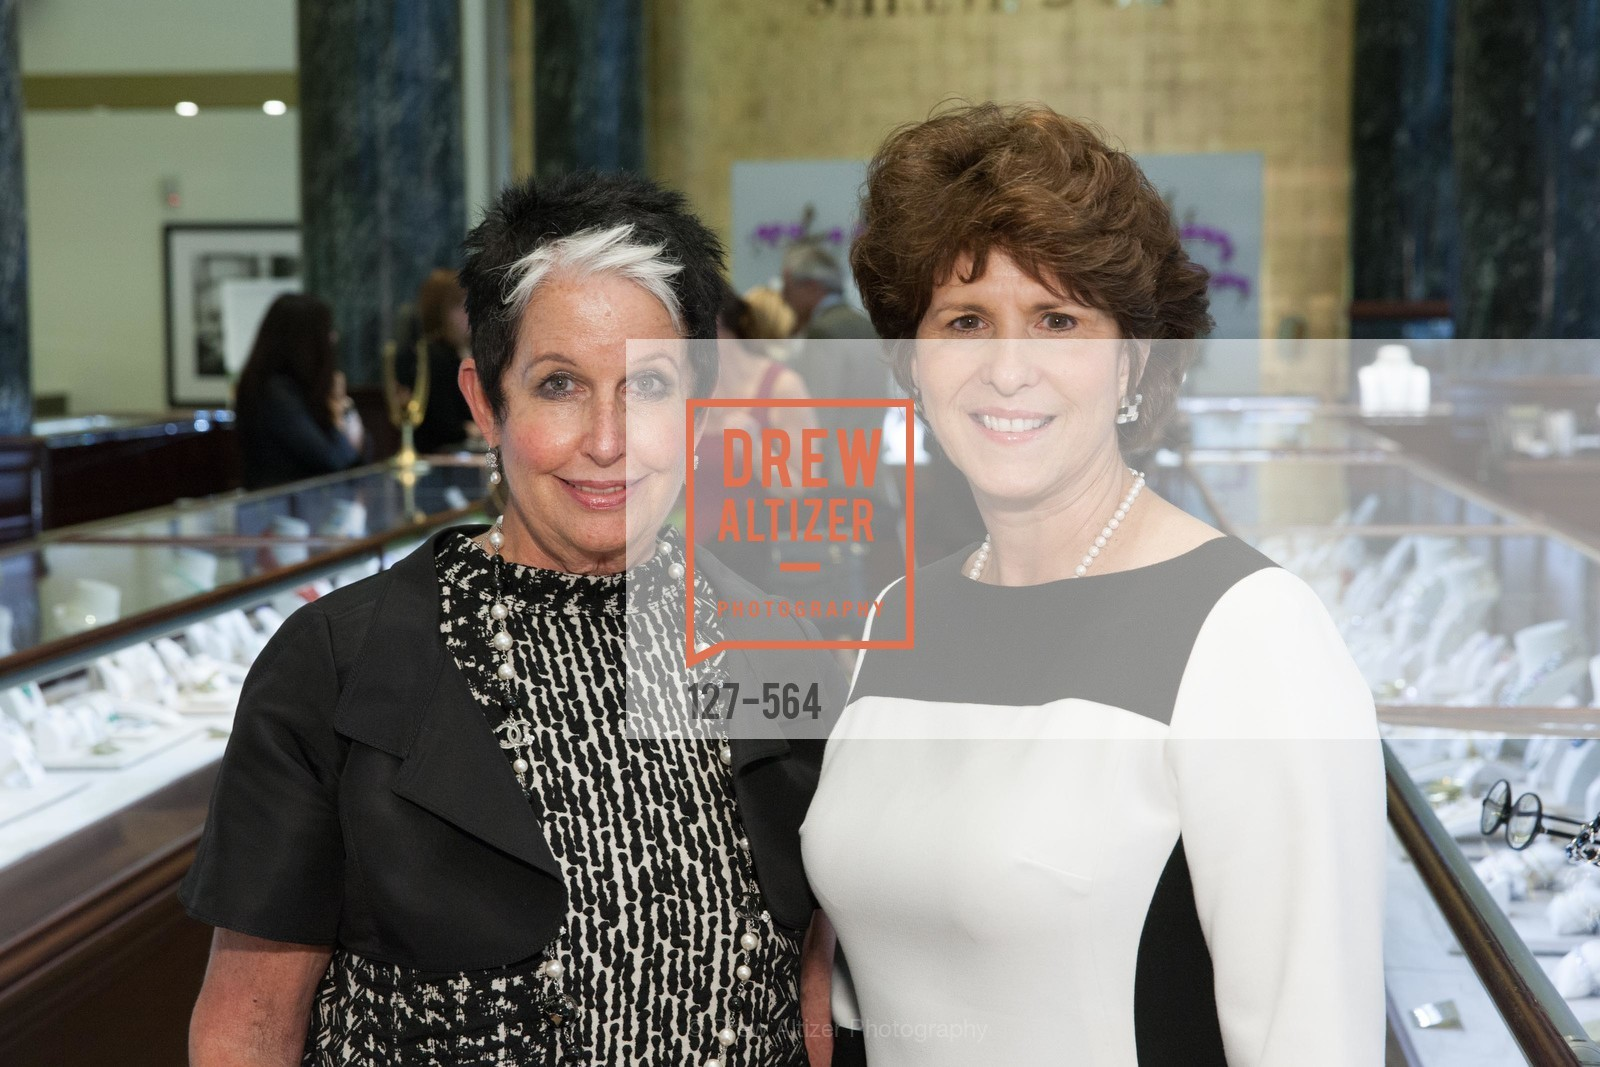 Karen Kubin, Juanita Kizor, SHREVE & CO. Hosts AMERICAN CANCER SOCIETY BENEFIT, US, September 10th, 2014,Drew Altizer, Drew Altizer Photography, full-service agency, private events, San Francisco photographer, photographer california